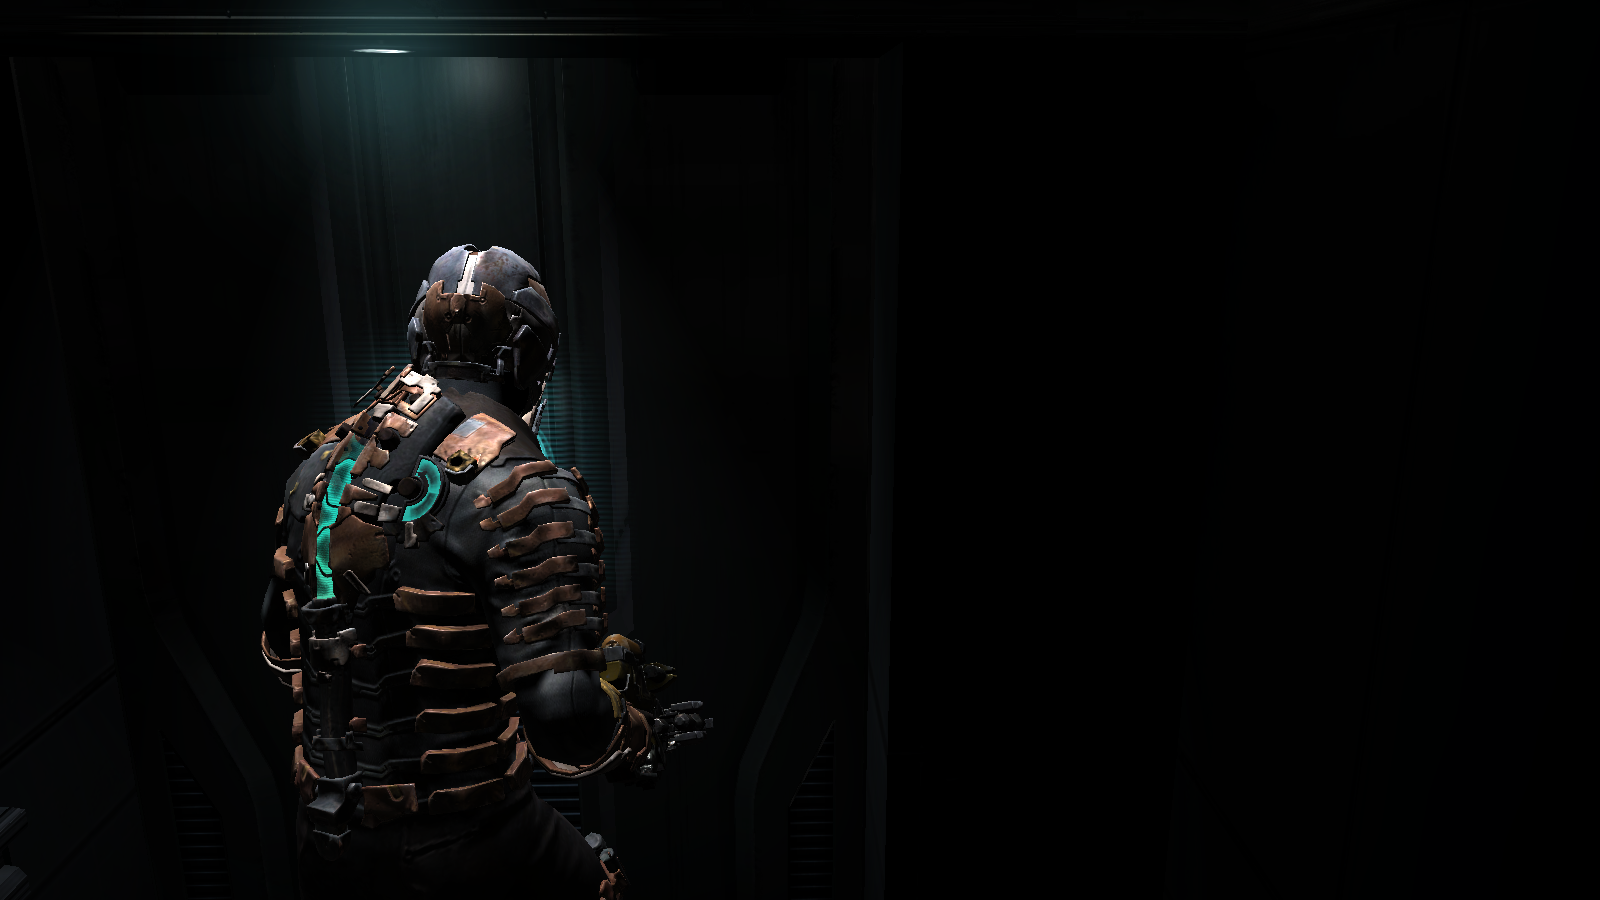 Video Game - Dead Space 2  Horror Gore Ds2 Deadspace2 Wallpaper